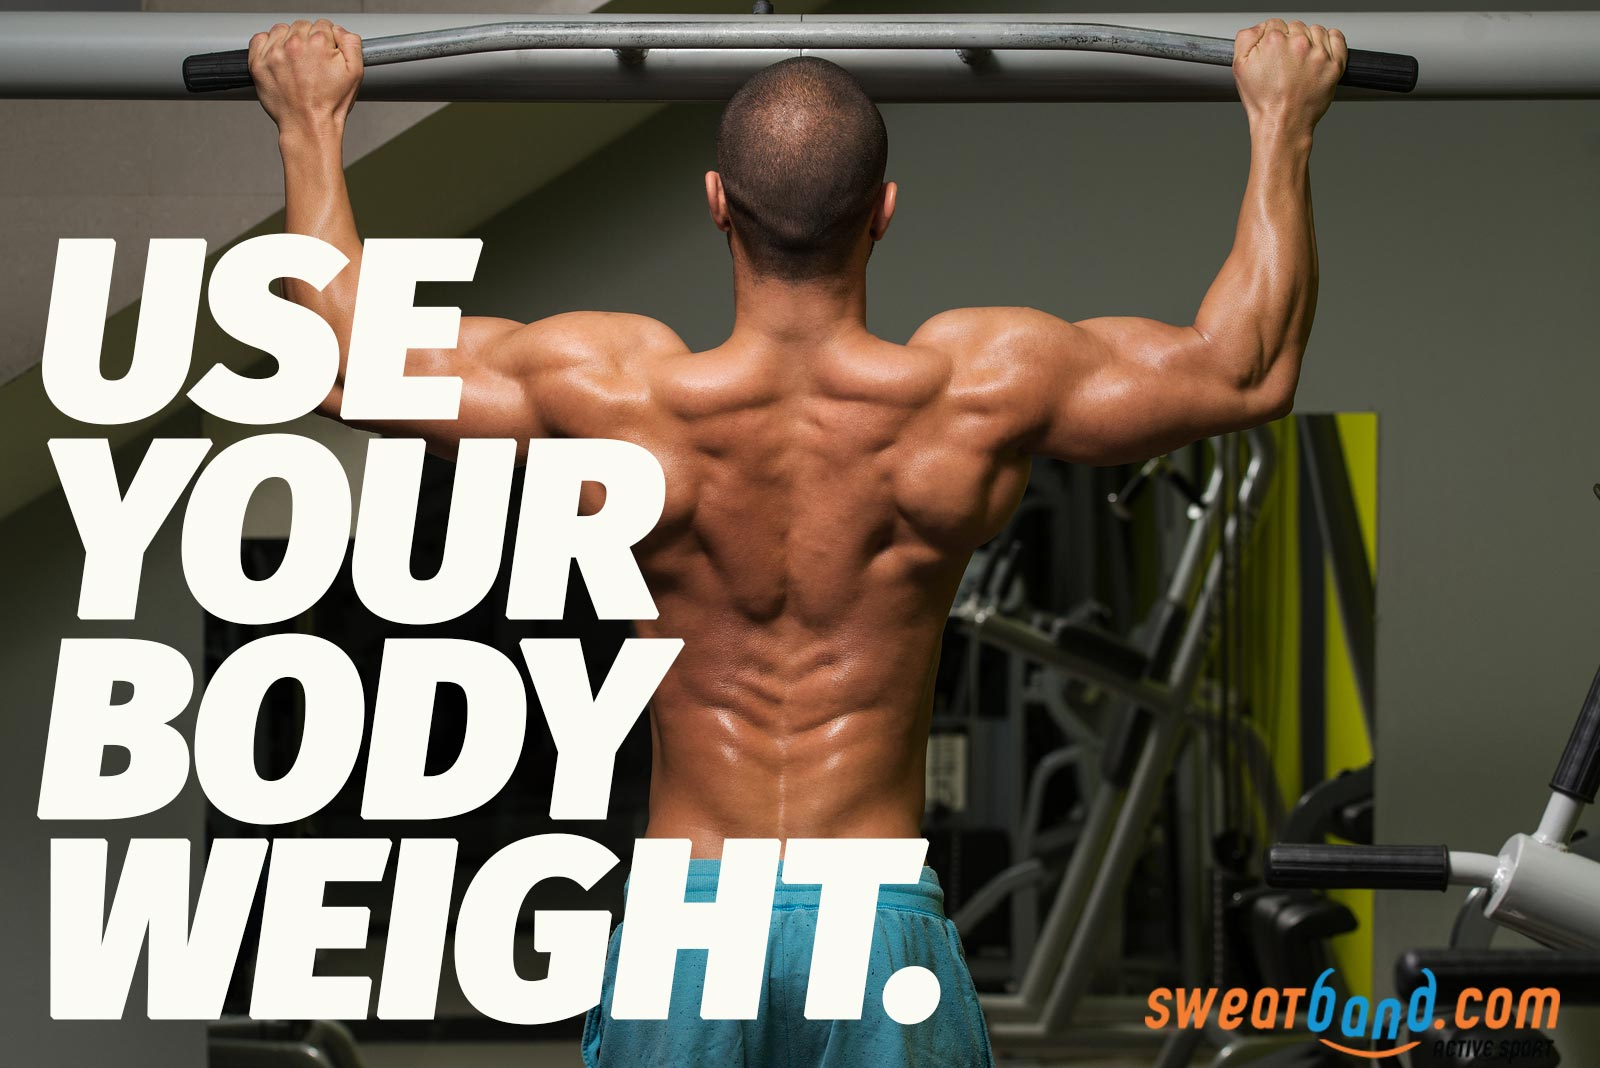 Don't fancy weights? You can use your body weight to build up strength in your arms